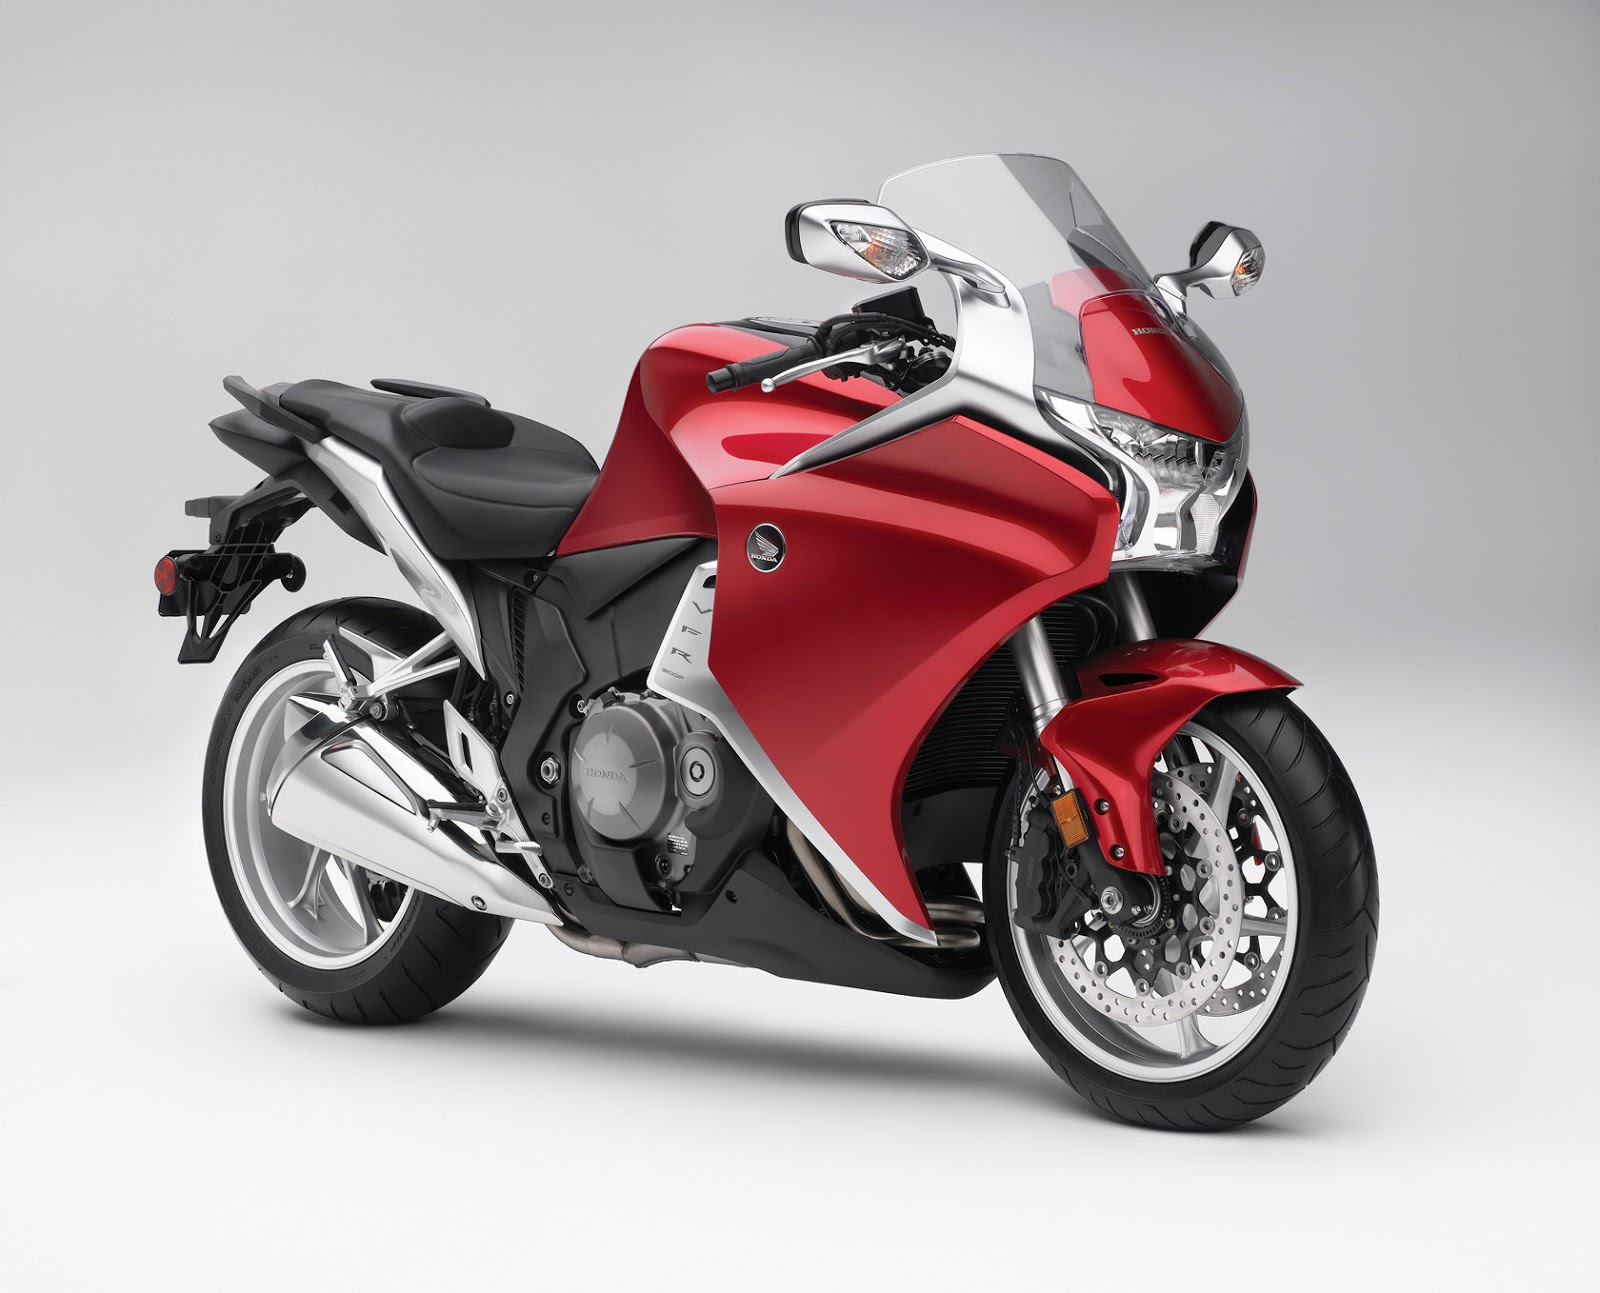 2010 Honda InterceptorVFR1200Fg